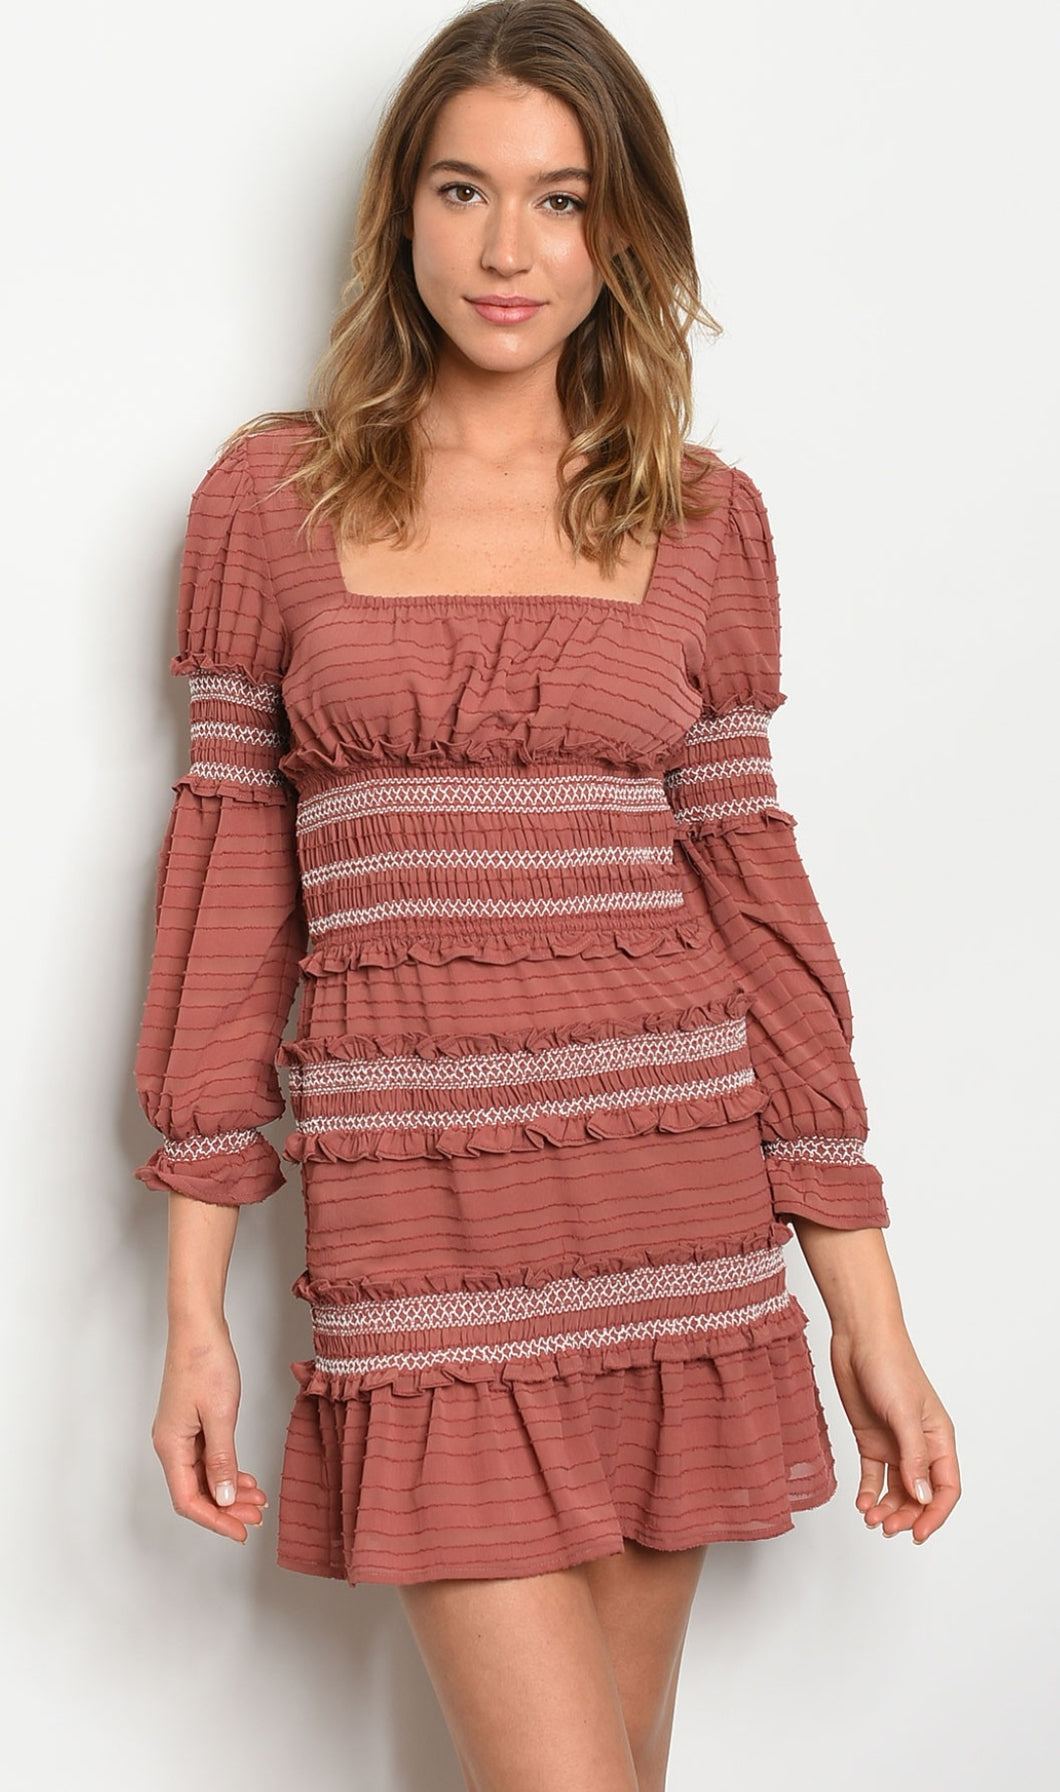 Deep Mauve Ruffle Dress - Wanderer Traveling Boutique